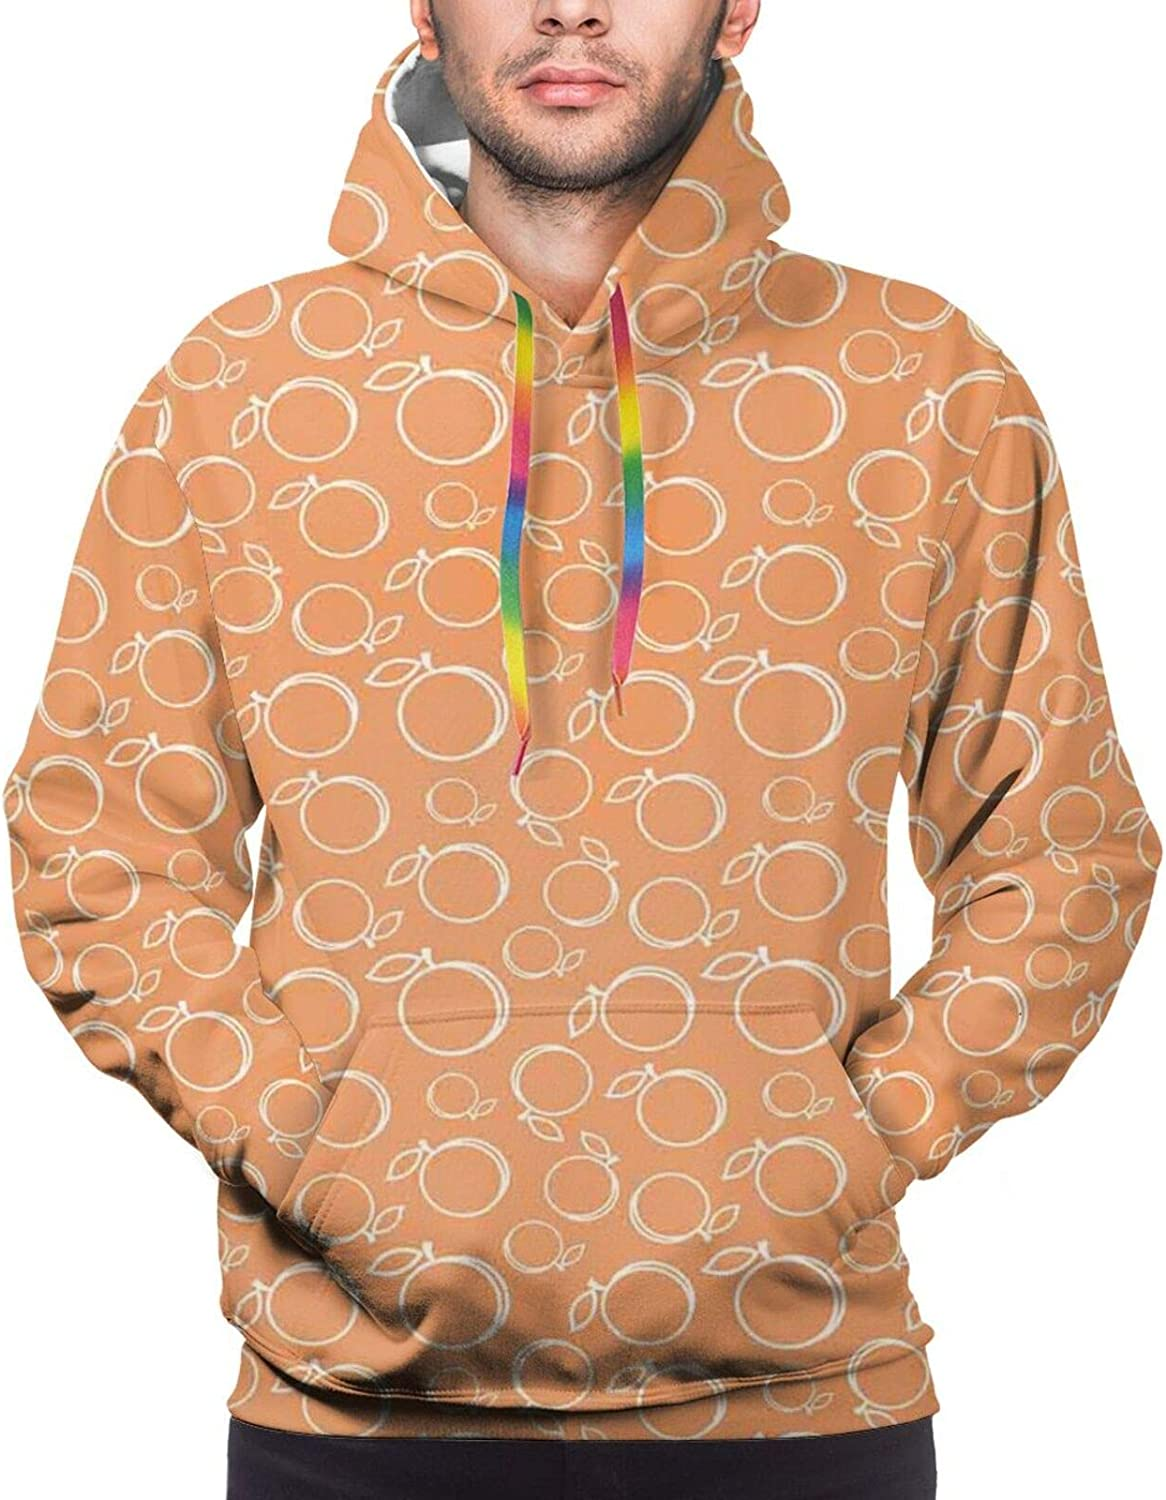 TENJONE Men's Hoodies Sweatshirts,Continuous Pattern with Lovely Pet Sausage Dog Lover Print